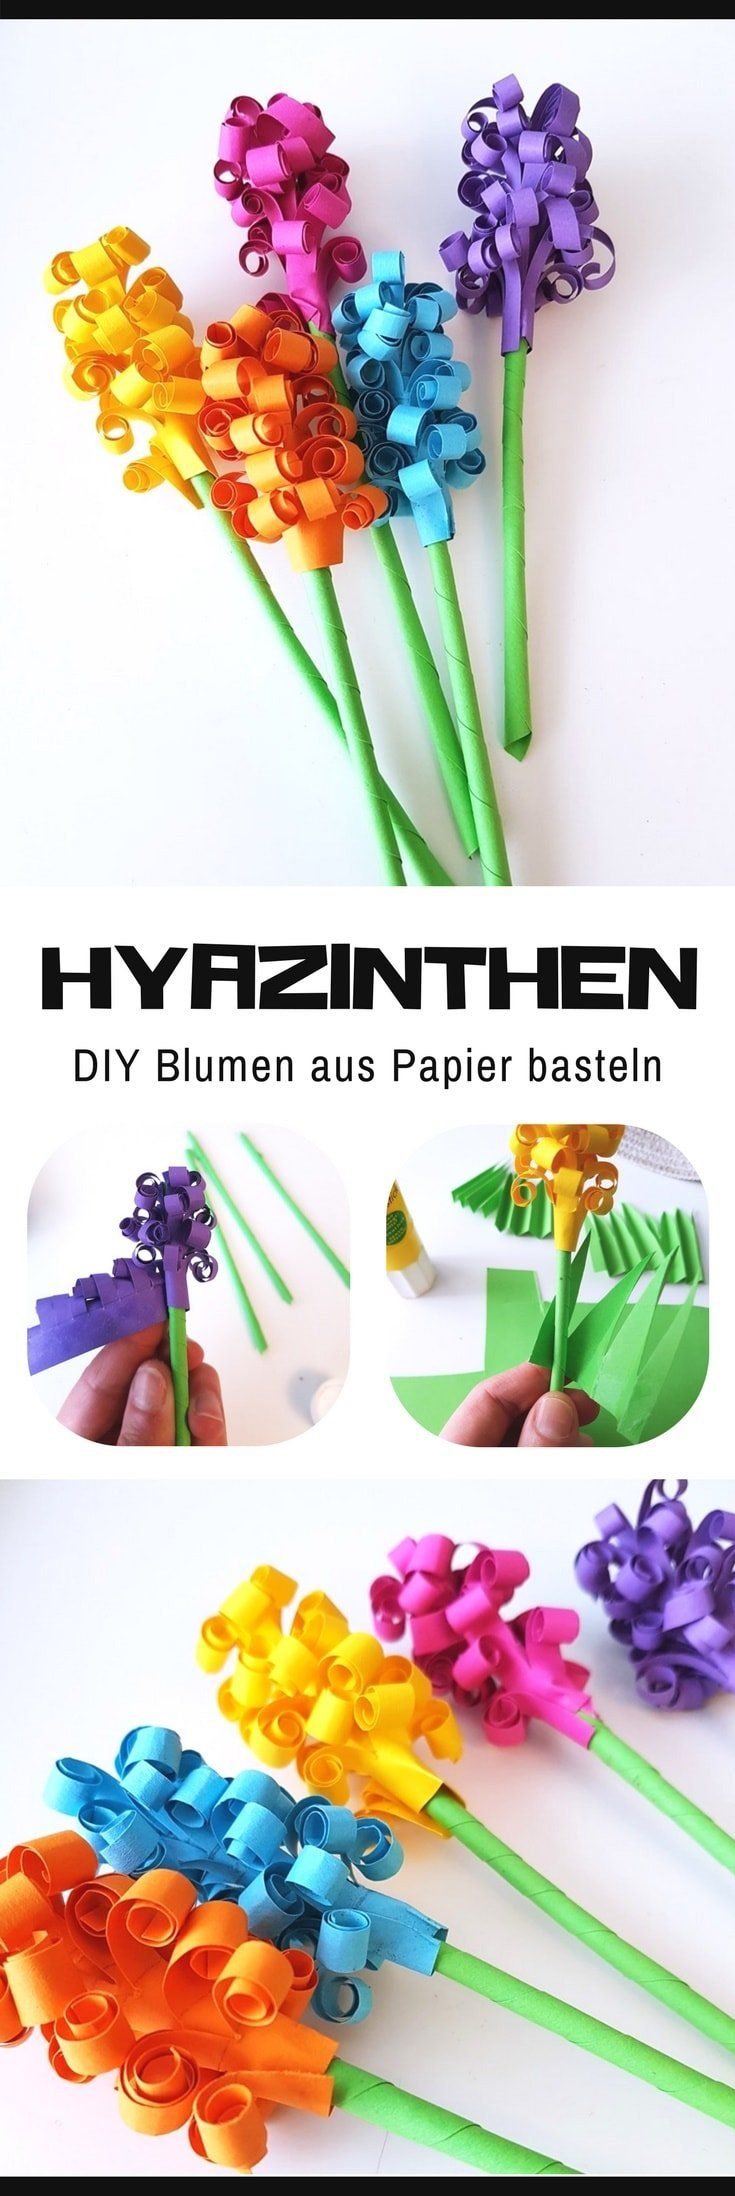 Making paper hyacinths: DIY flowers for spring  Pinterest Pin: Make hyacinth flowers from paper The post Making paper hyacinths: DIY flowers for spring appeared first on Woman Casual.